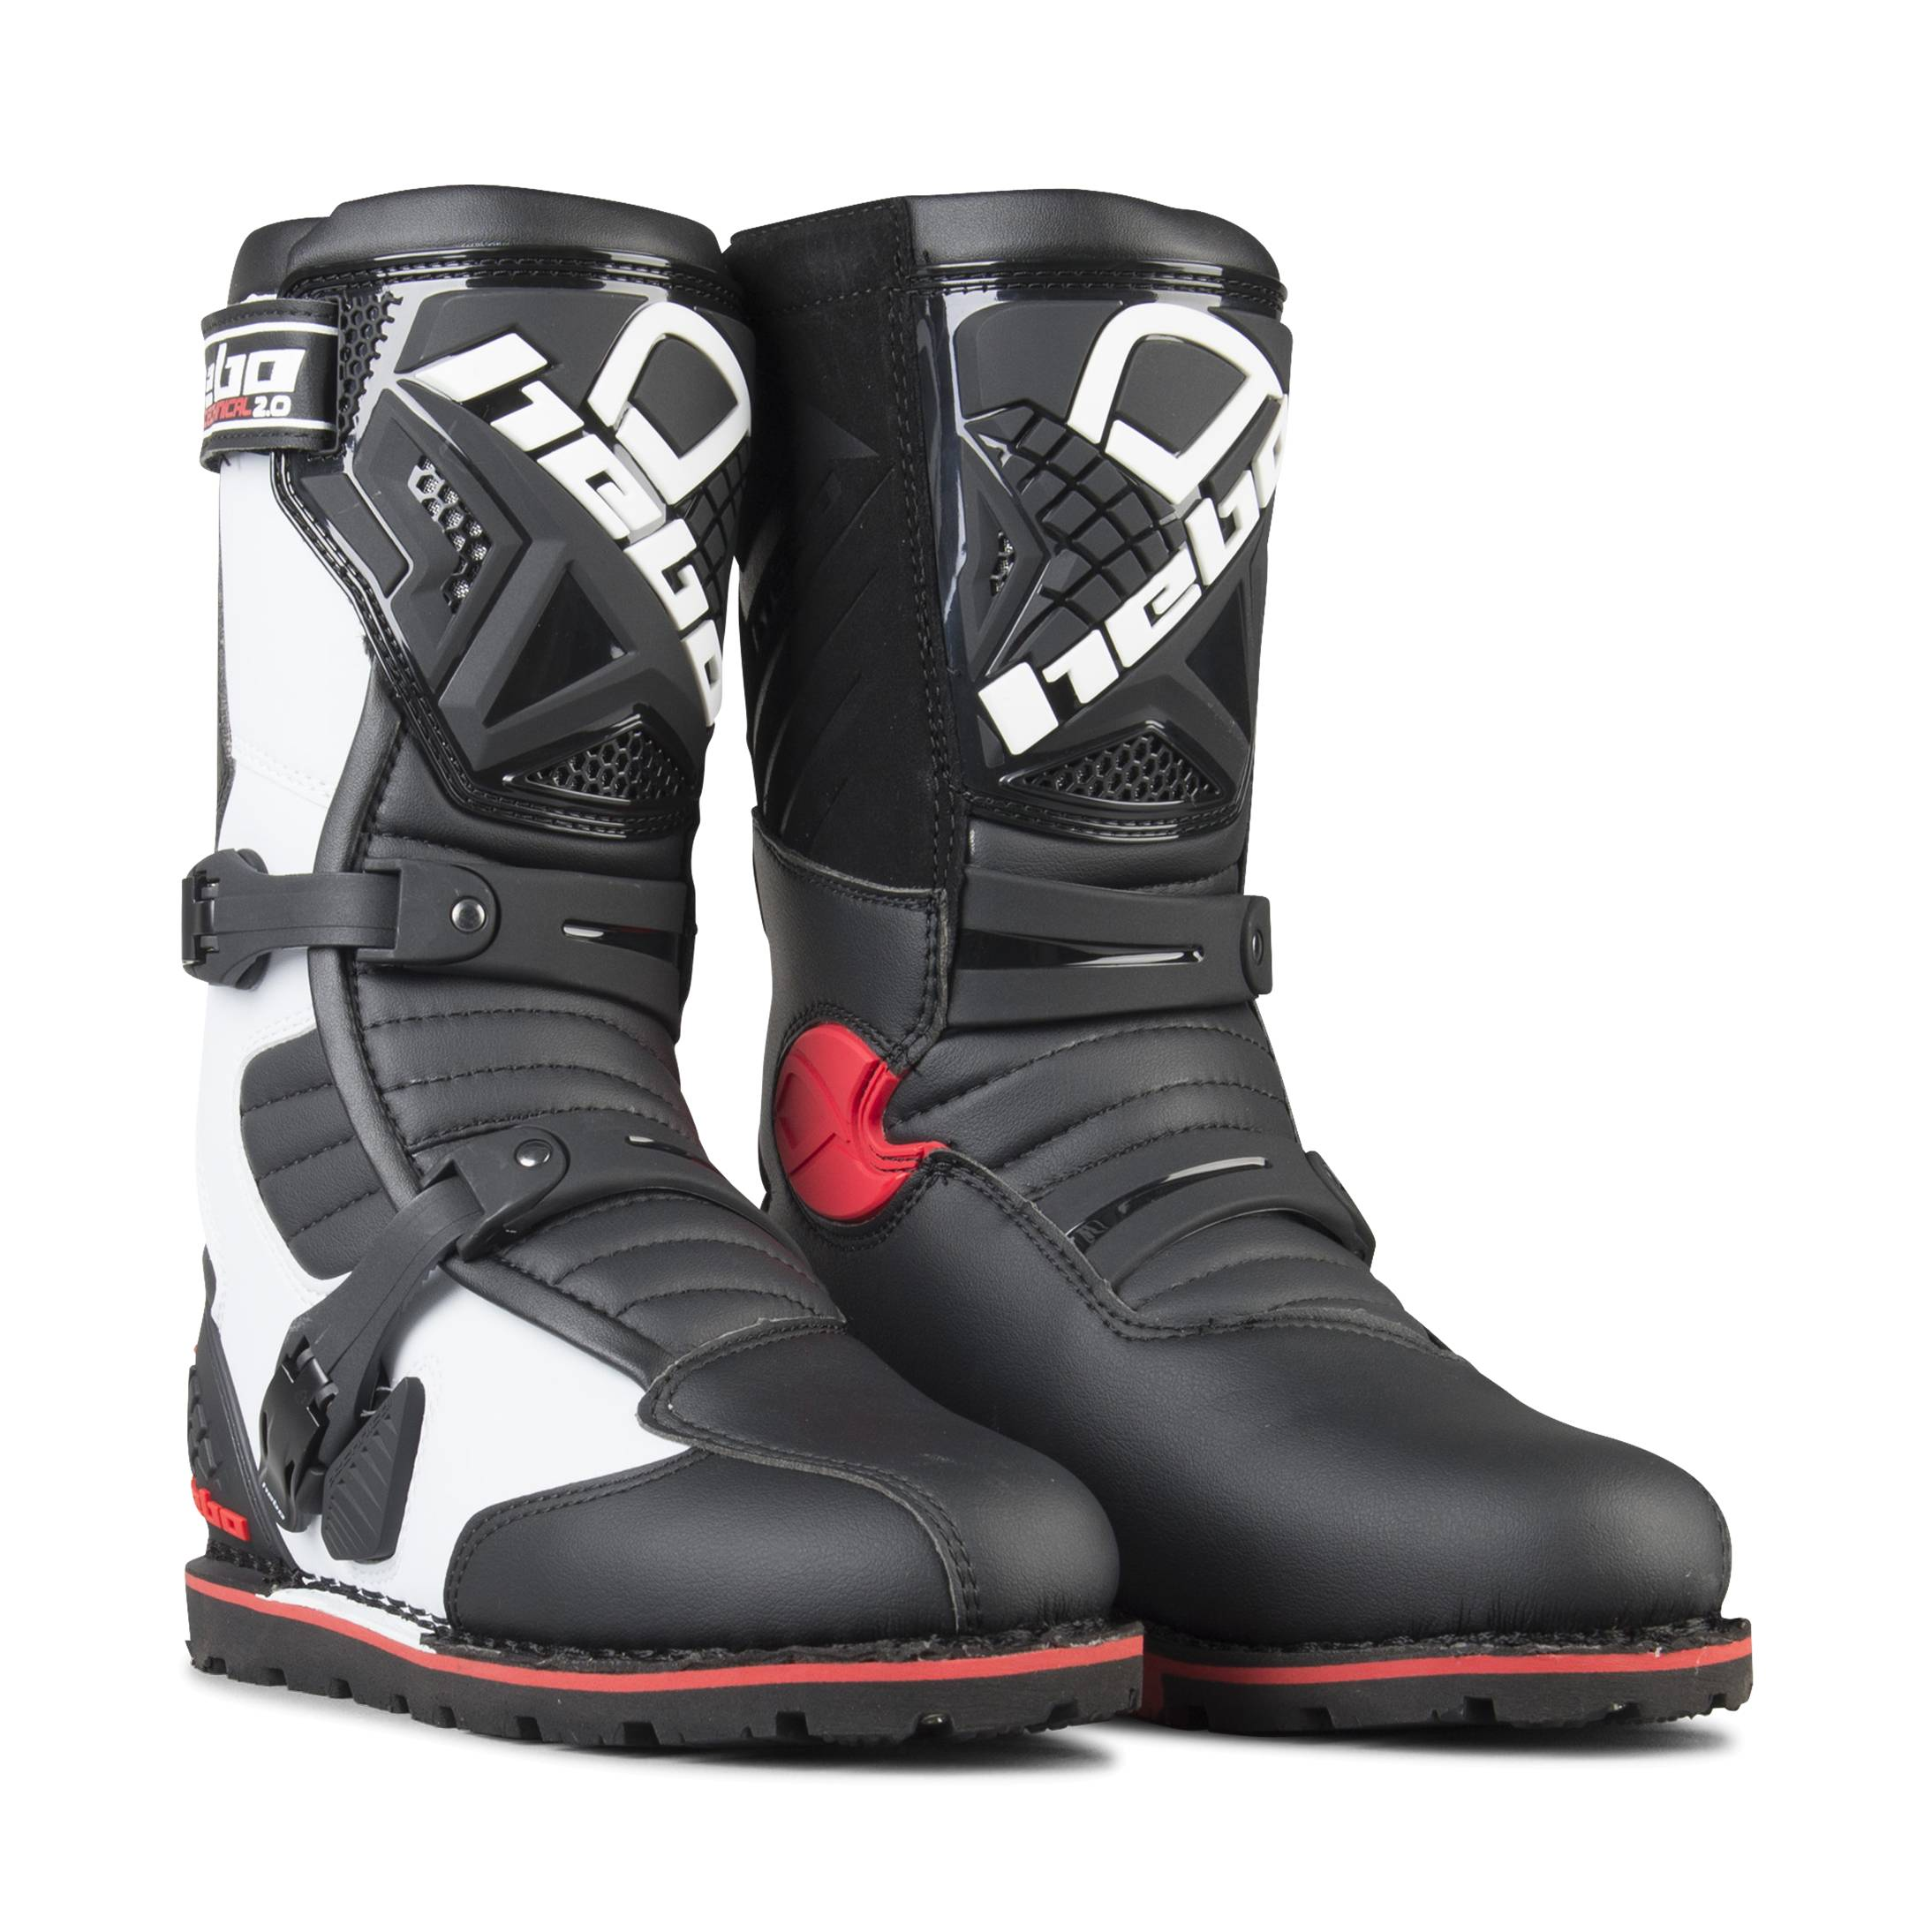 Hebo Bottes Trial Hebo Technical 2.0 Micro Blanches